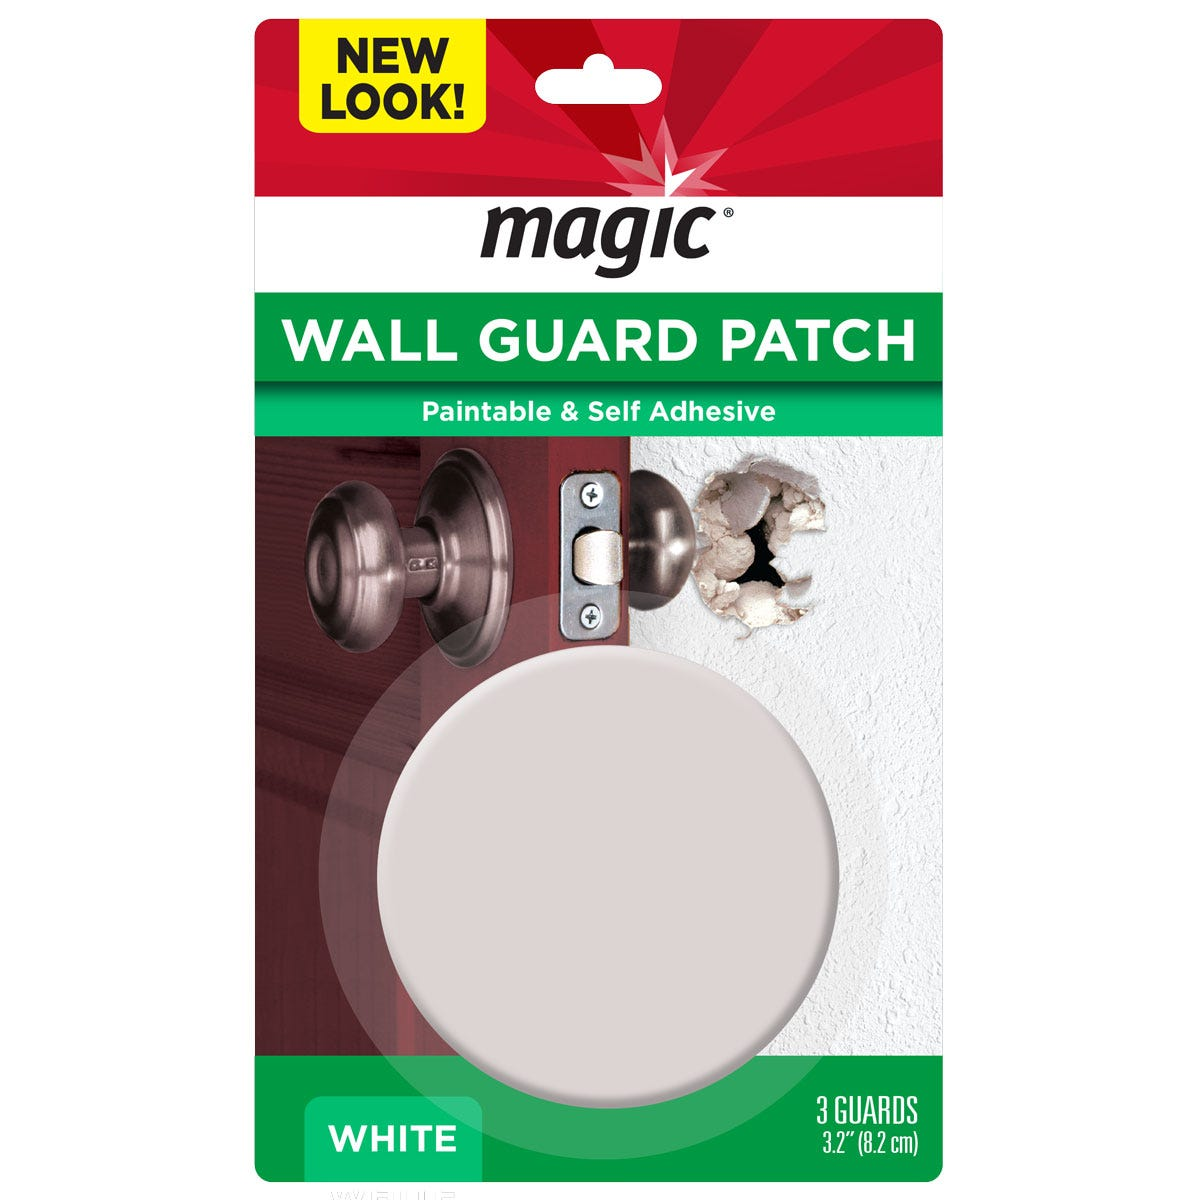 Wall Hole Patch and Guard